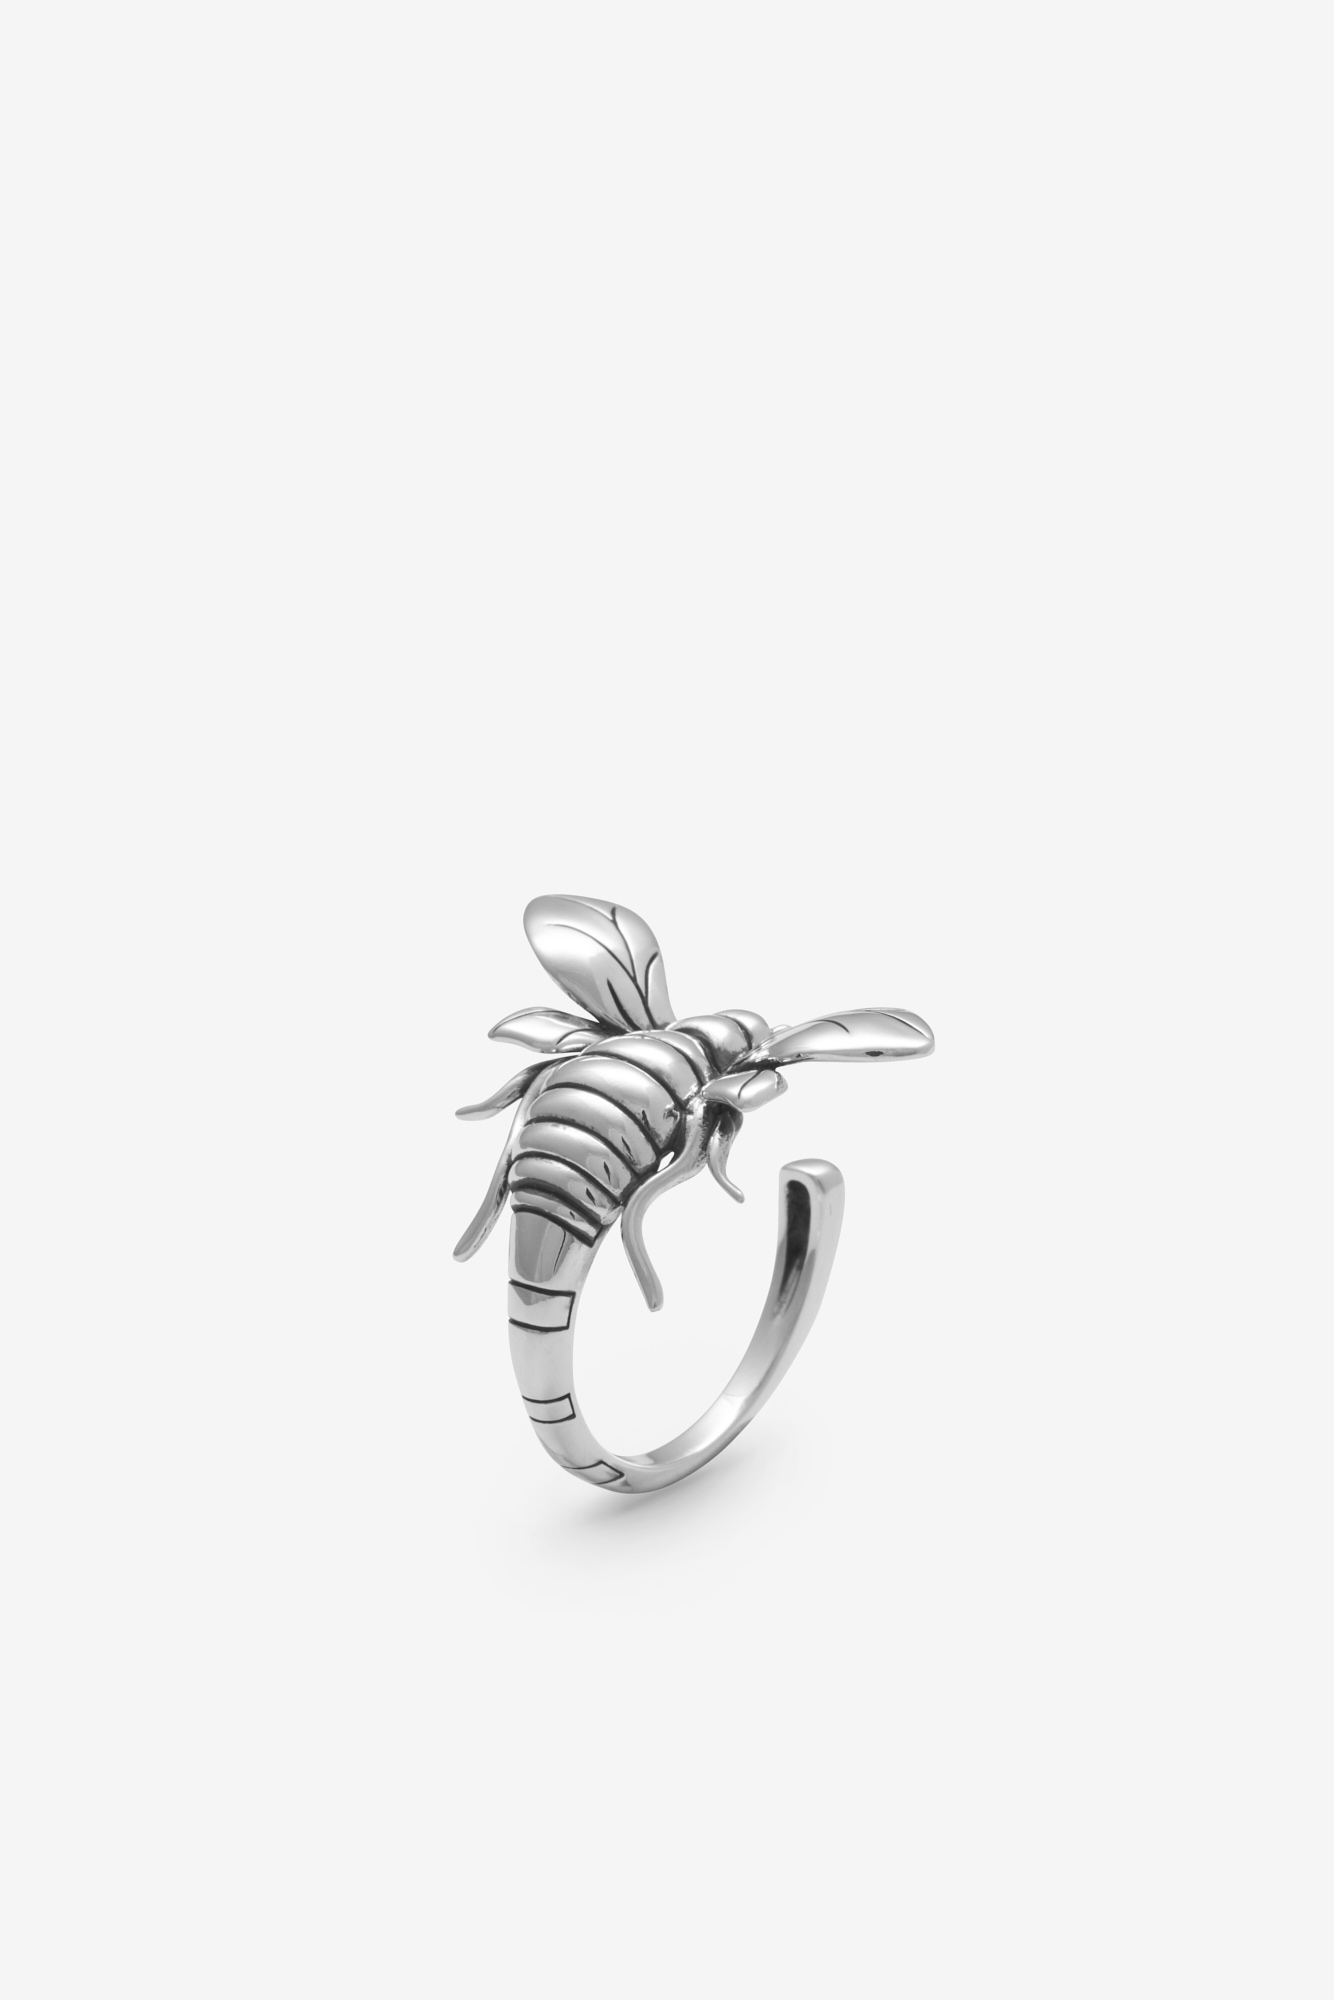 19-03-5-1-003-114-11_Bee Ring_Silver_03